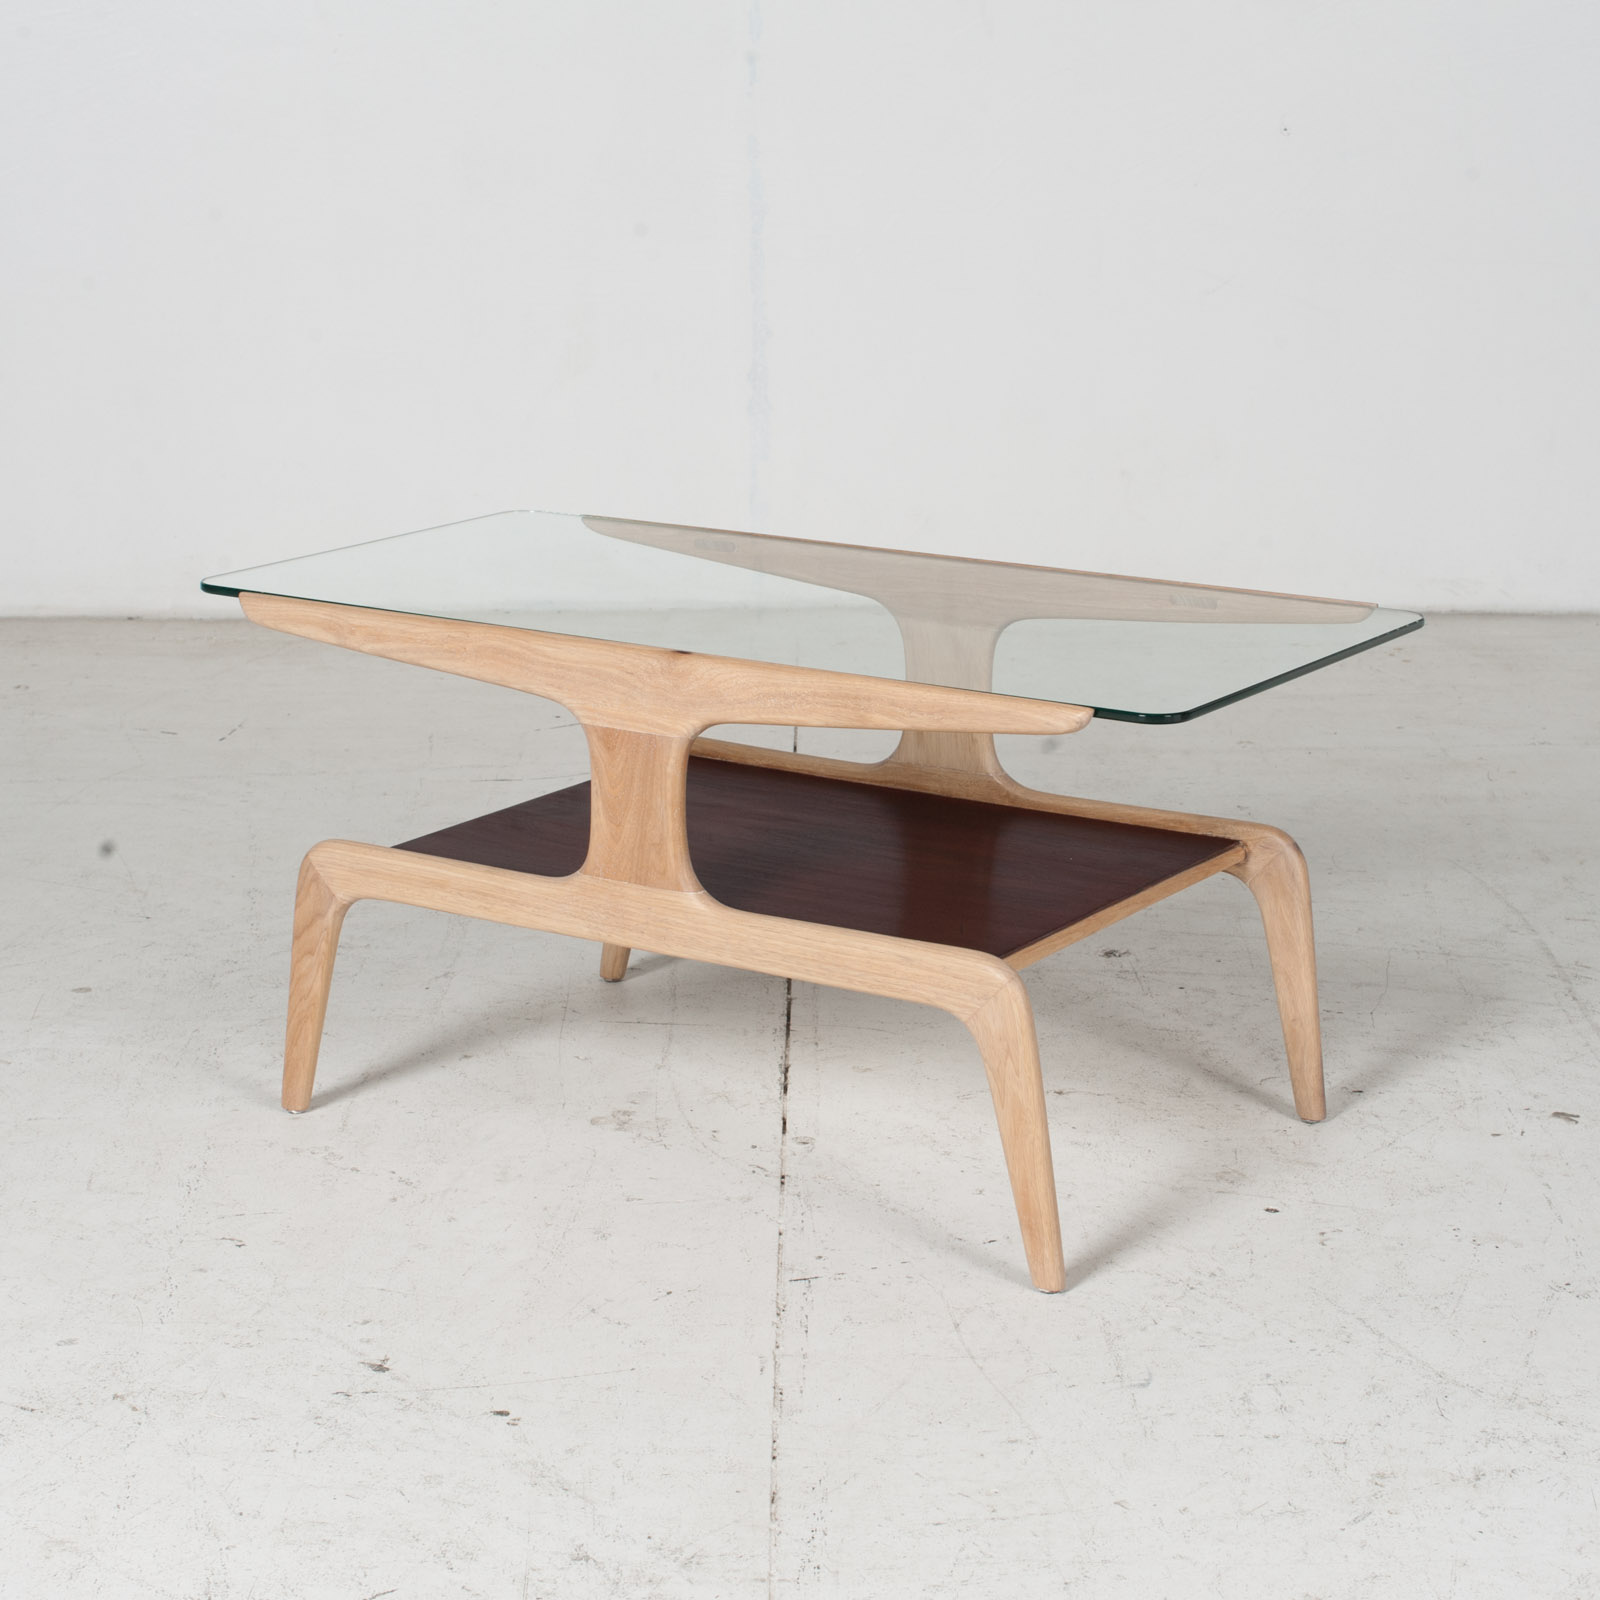 Coffee Table By Gio Ponti For Domus Nova, 1920s, Italy 4